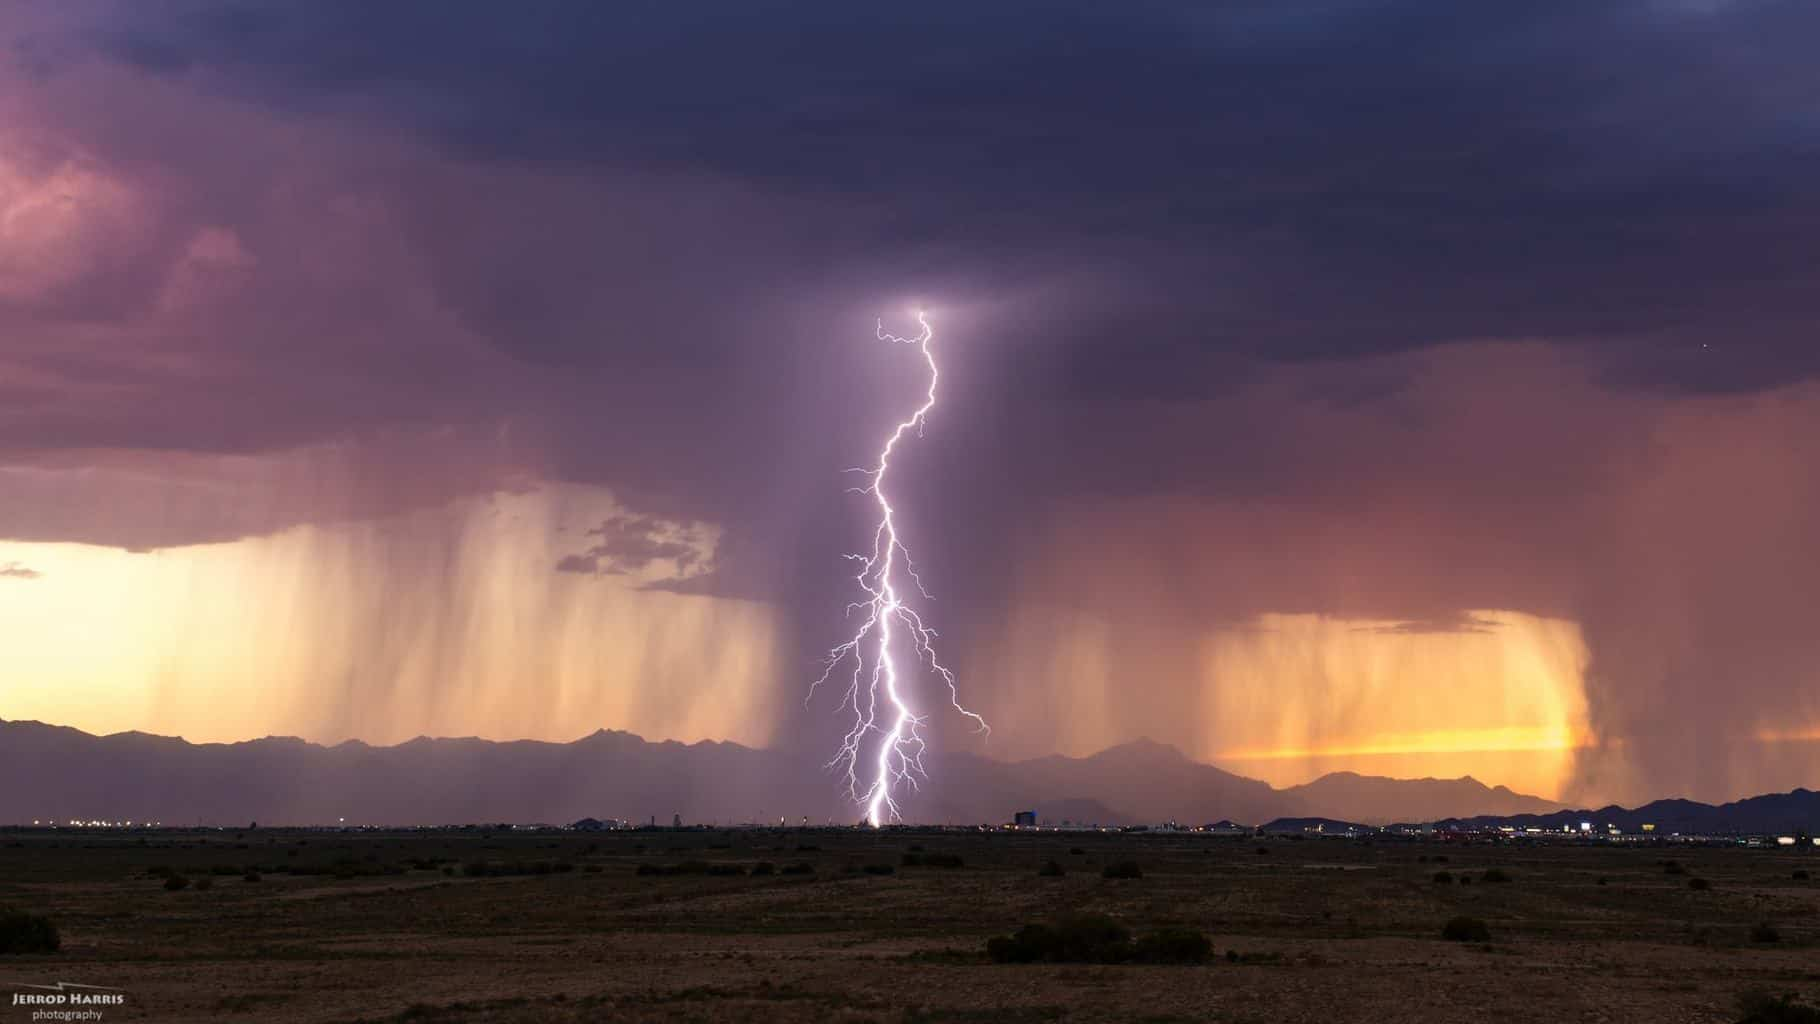 Lightning, a sunset and a little microburst going down in Chandler, Arizona on August 31st, 2015.